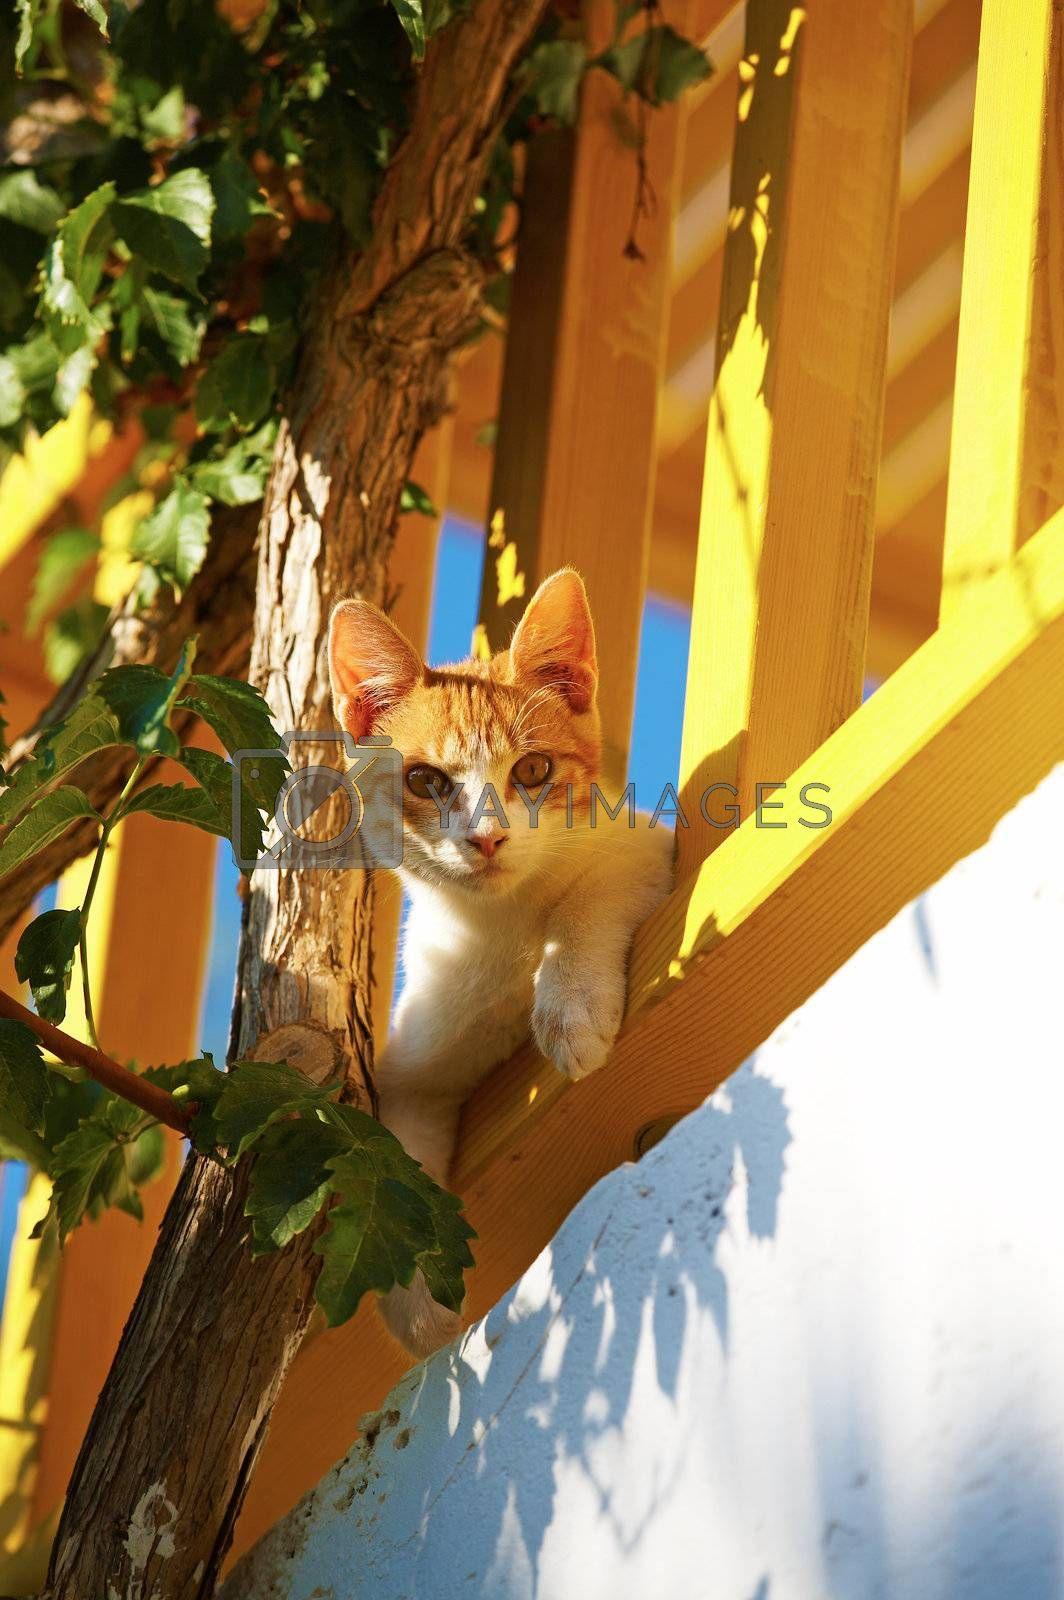 Royalty free image of The cat lies on a balcony by DeusNoxious